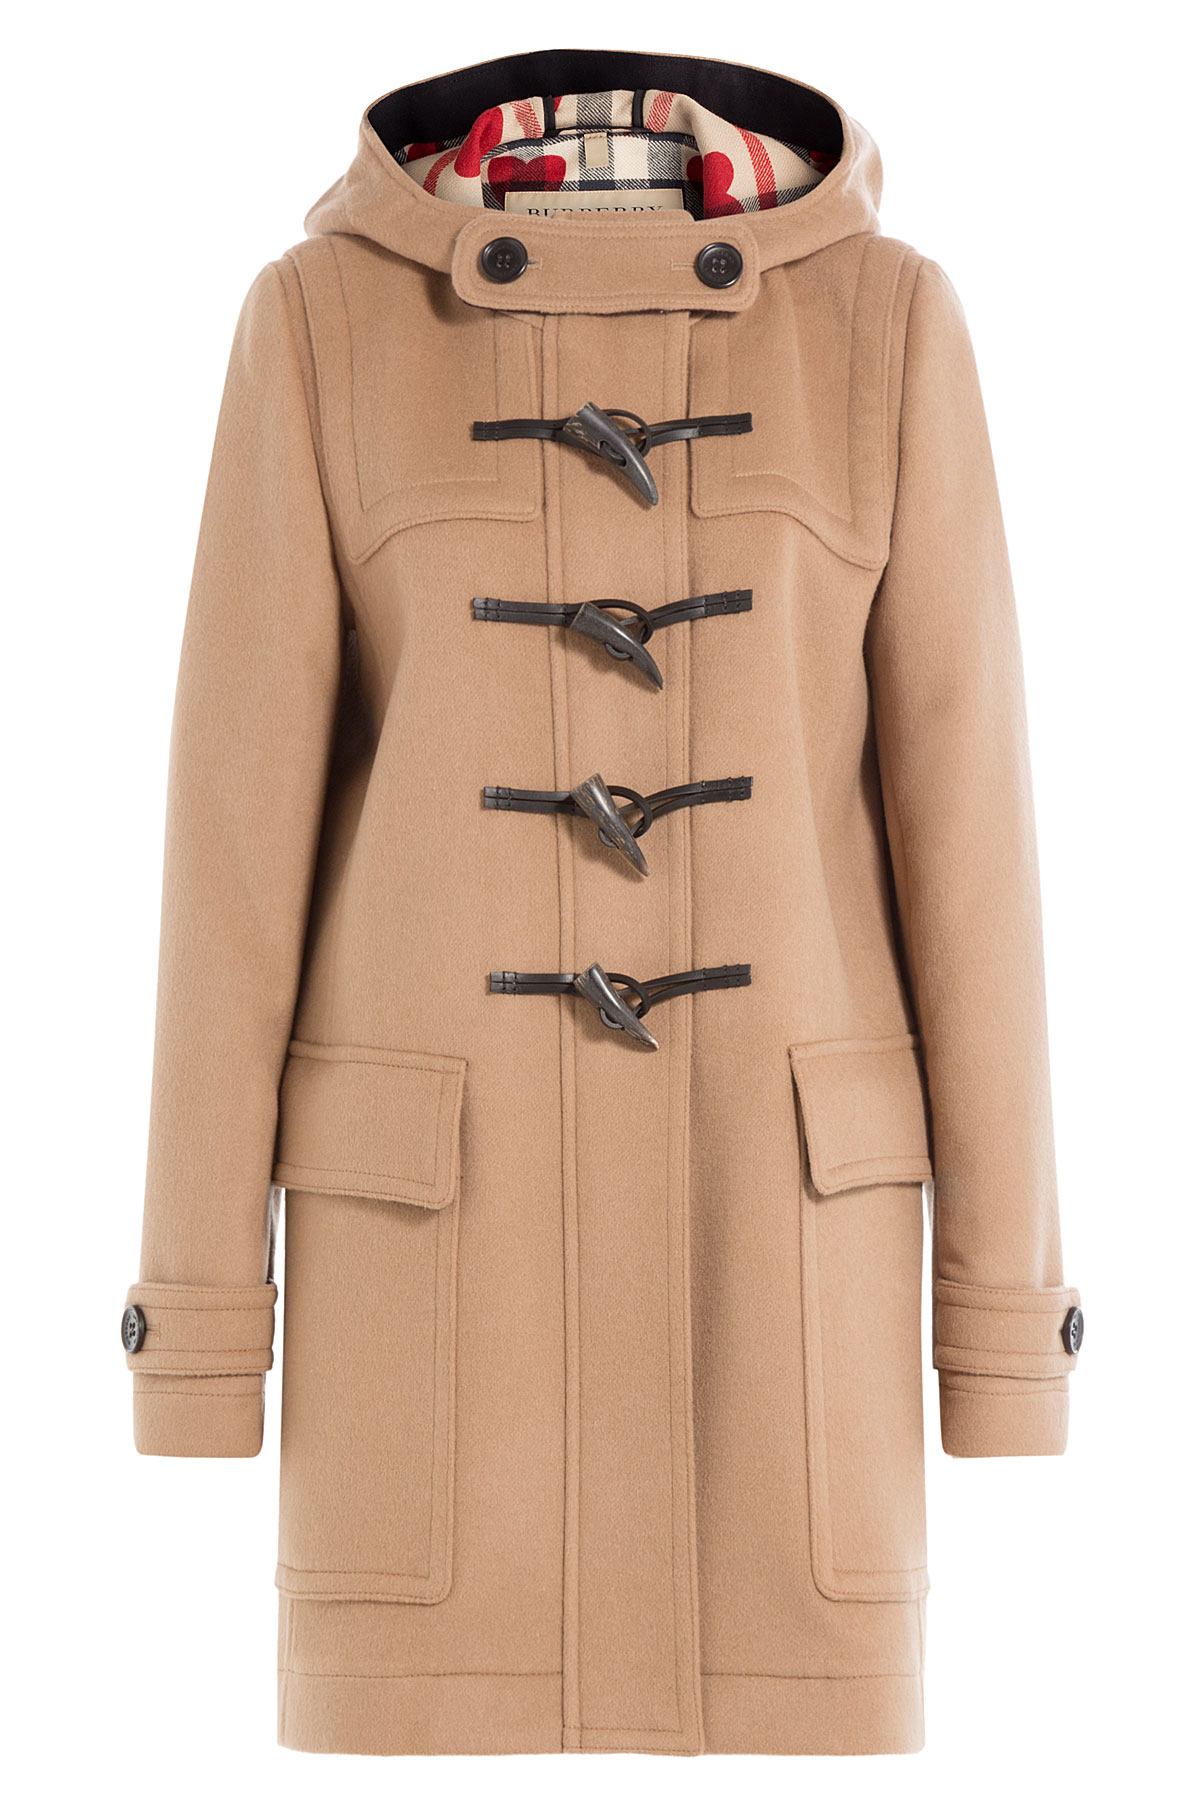 burberry wool duffle coat in natural lyst. Black Bedroom Furniture Sets. Home Design Ideas